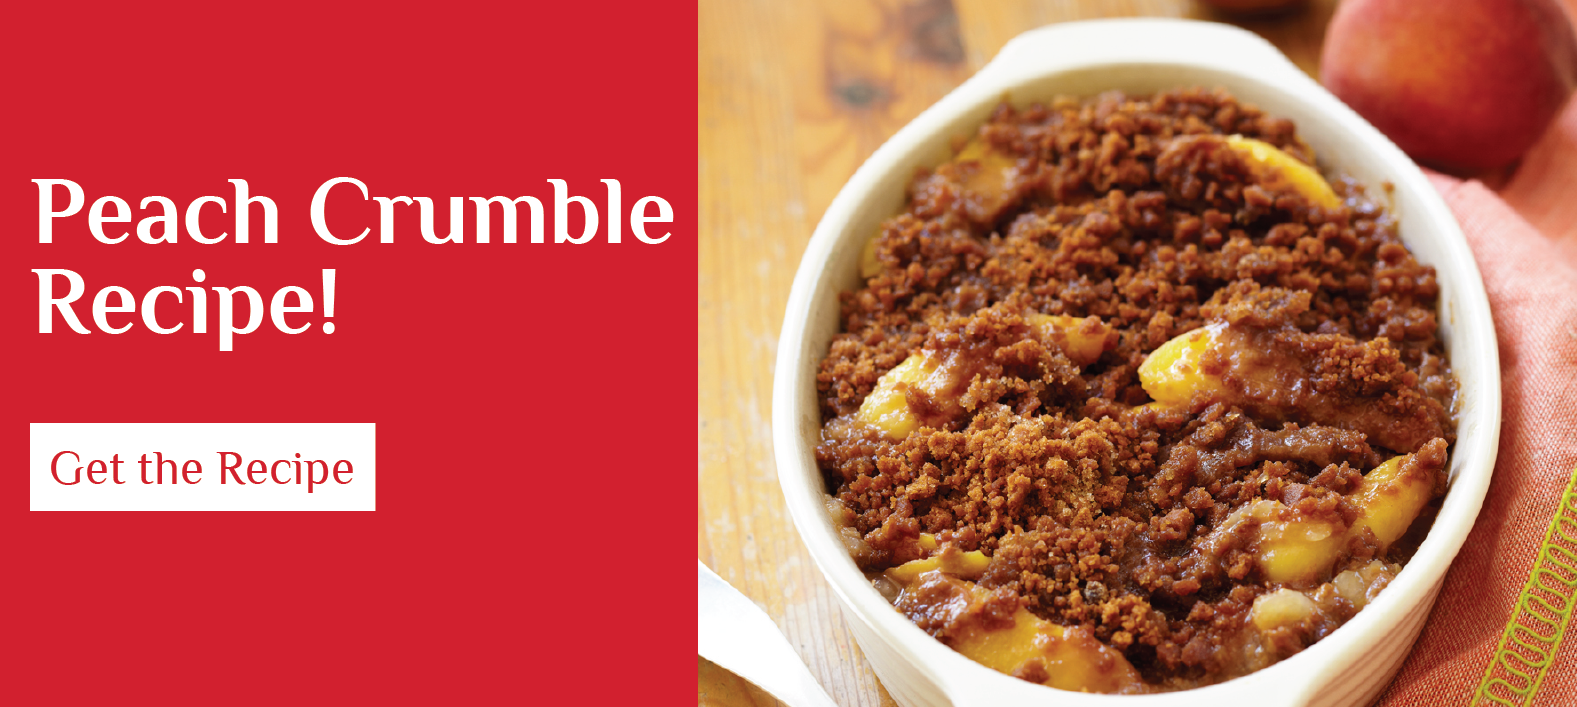 Get the Peach Crumble Recipe!